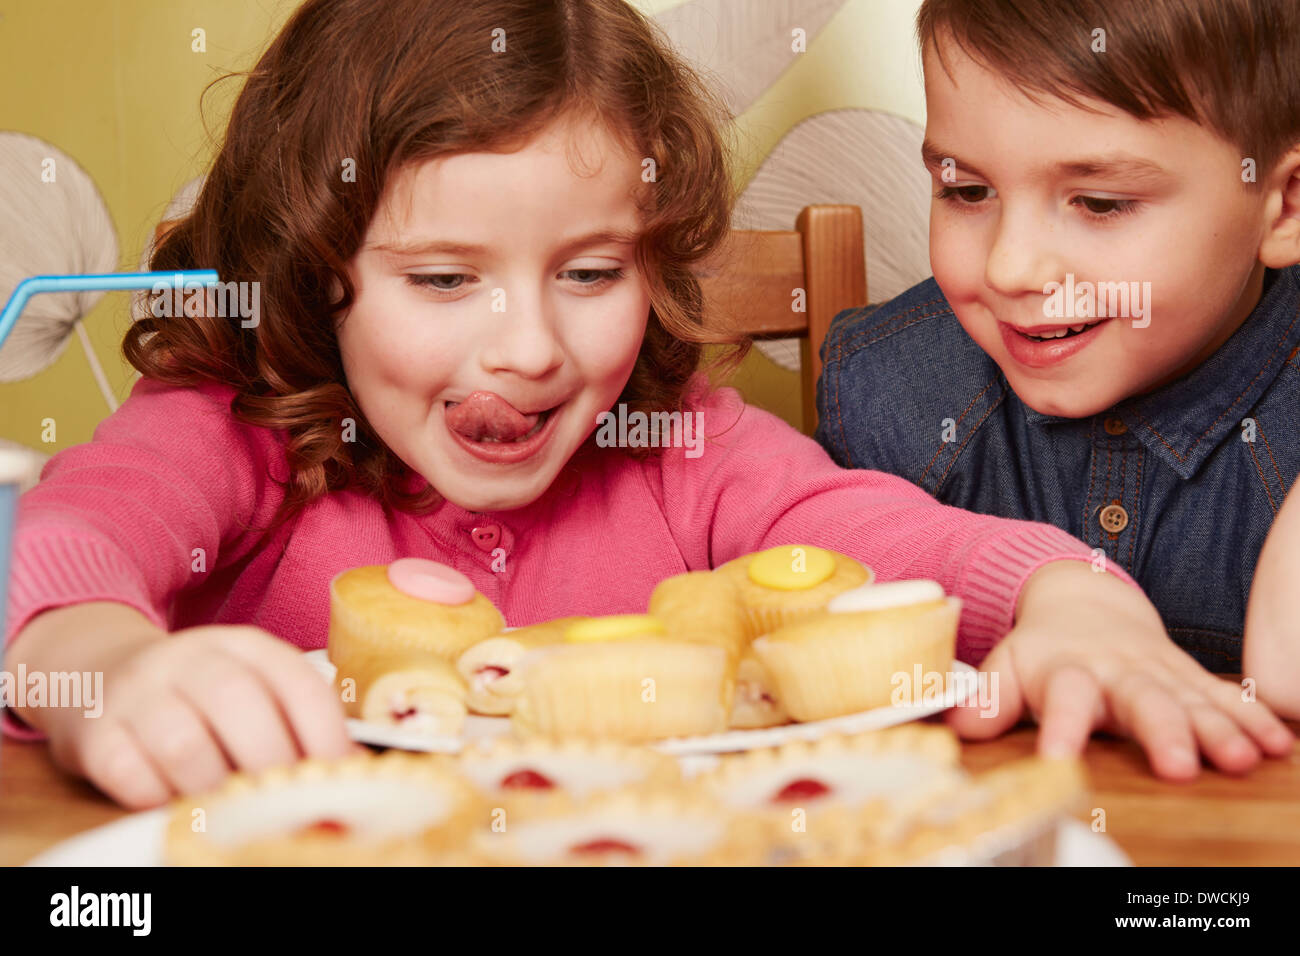 Girl staring at plate full of cakes, licking lips - Stock Image